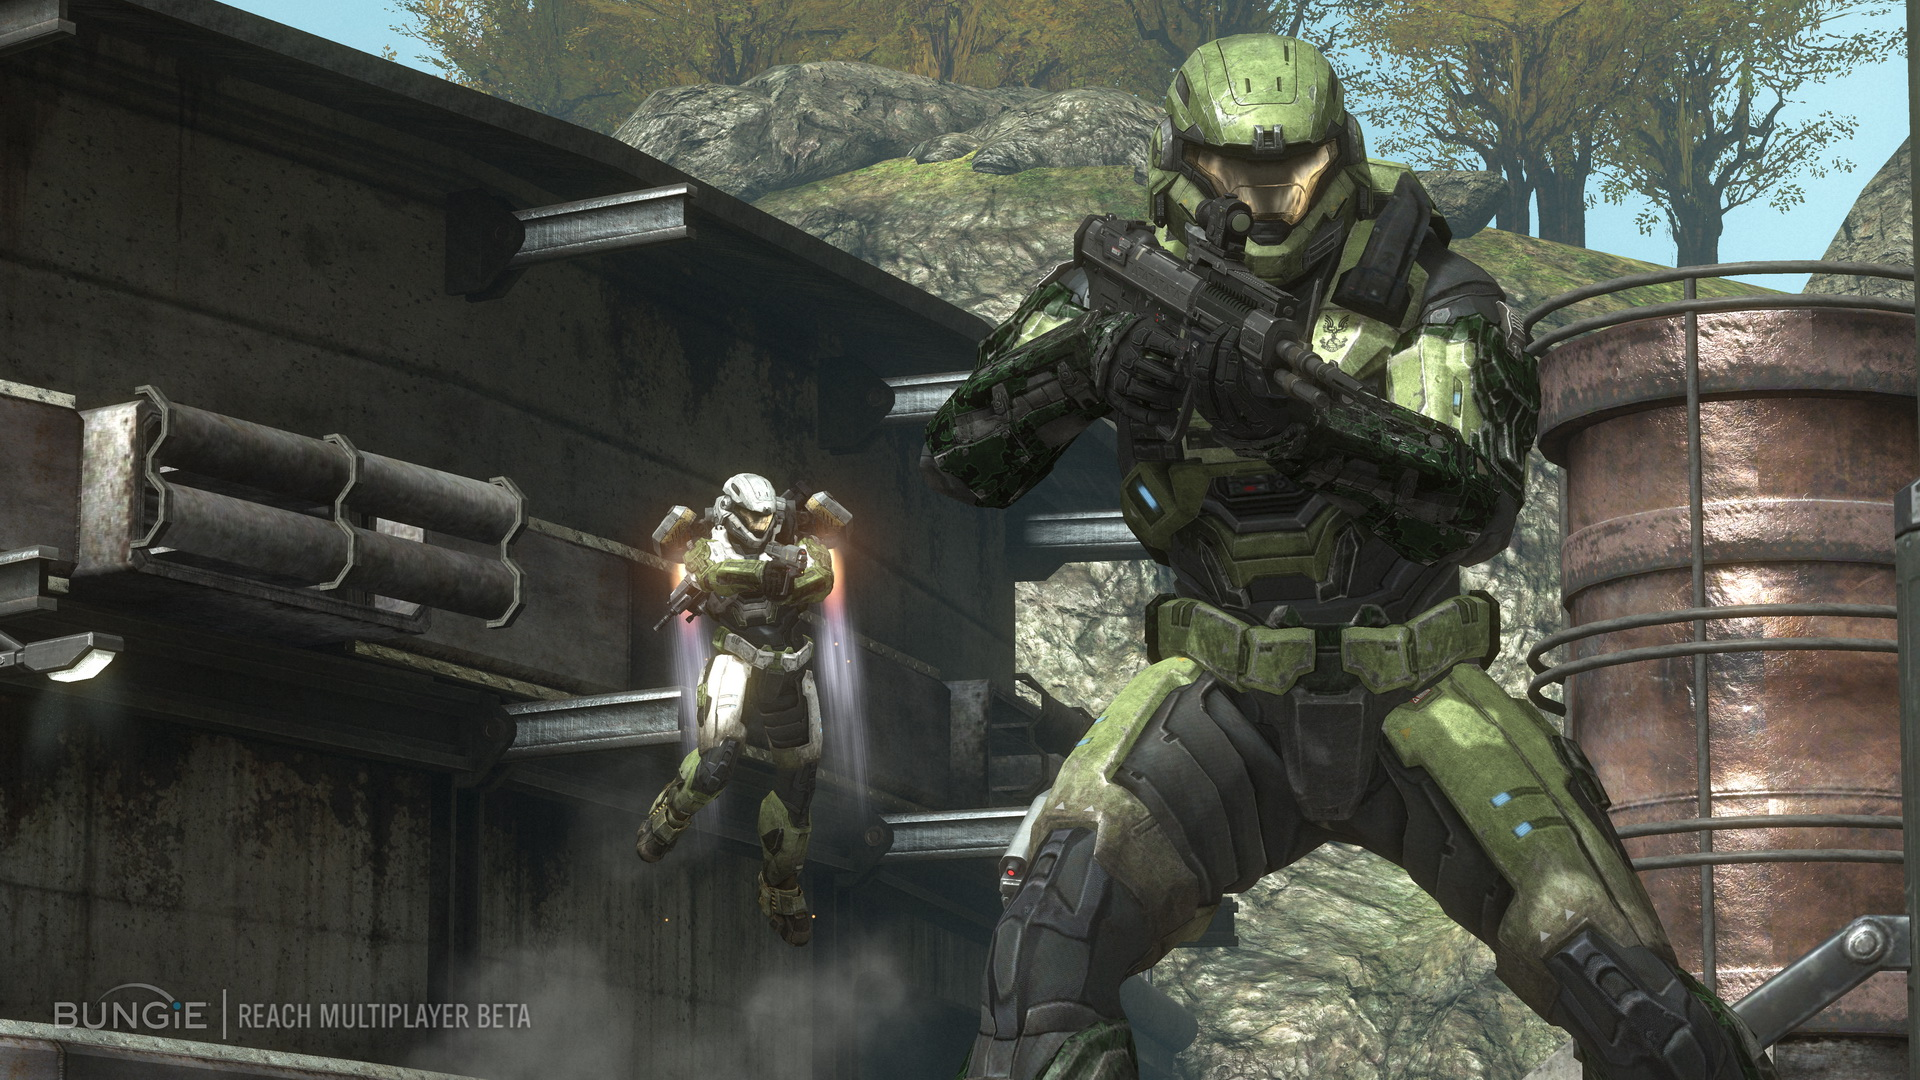 Get an Early Halo: Reach Beta Code